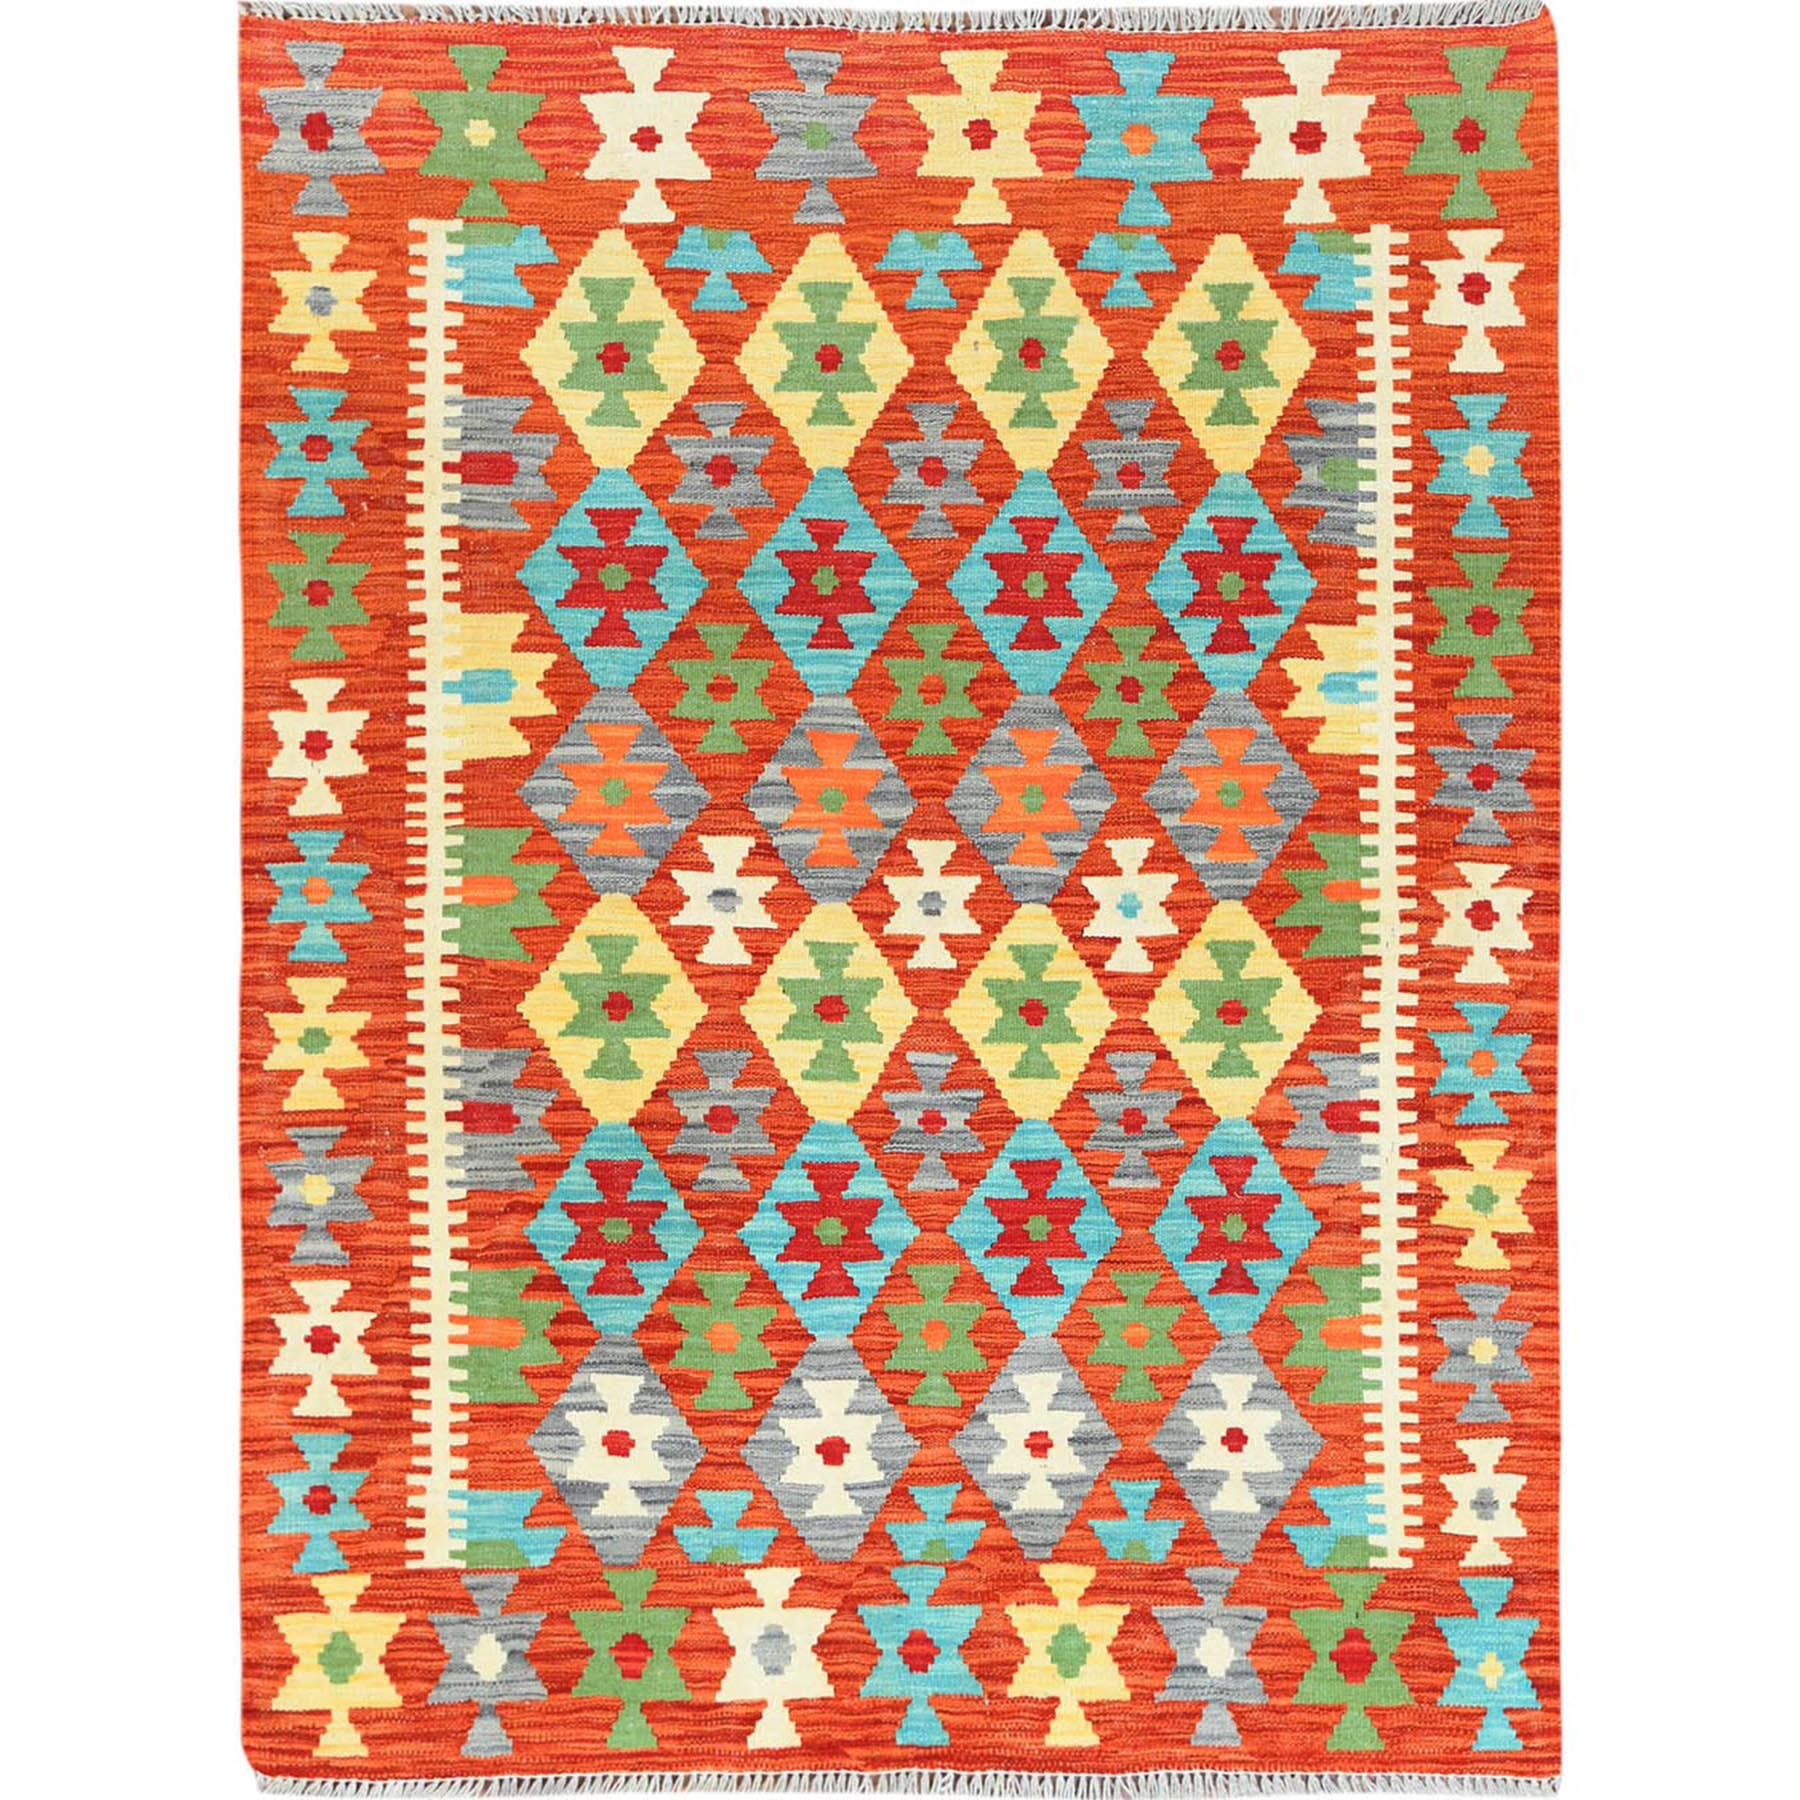 "4'2""x5'7"" Orange Geometric Design Afghan Kilim Reversible Pliable Wool Hand Woven Oriental Rug"